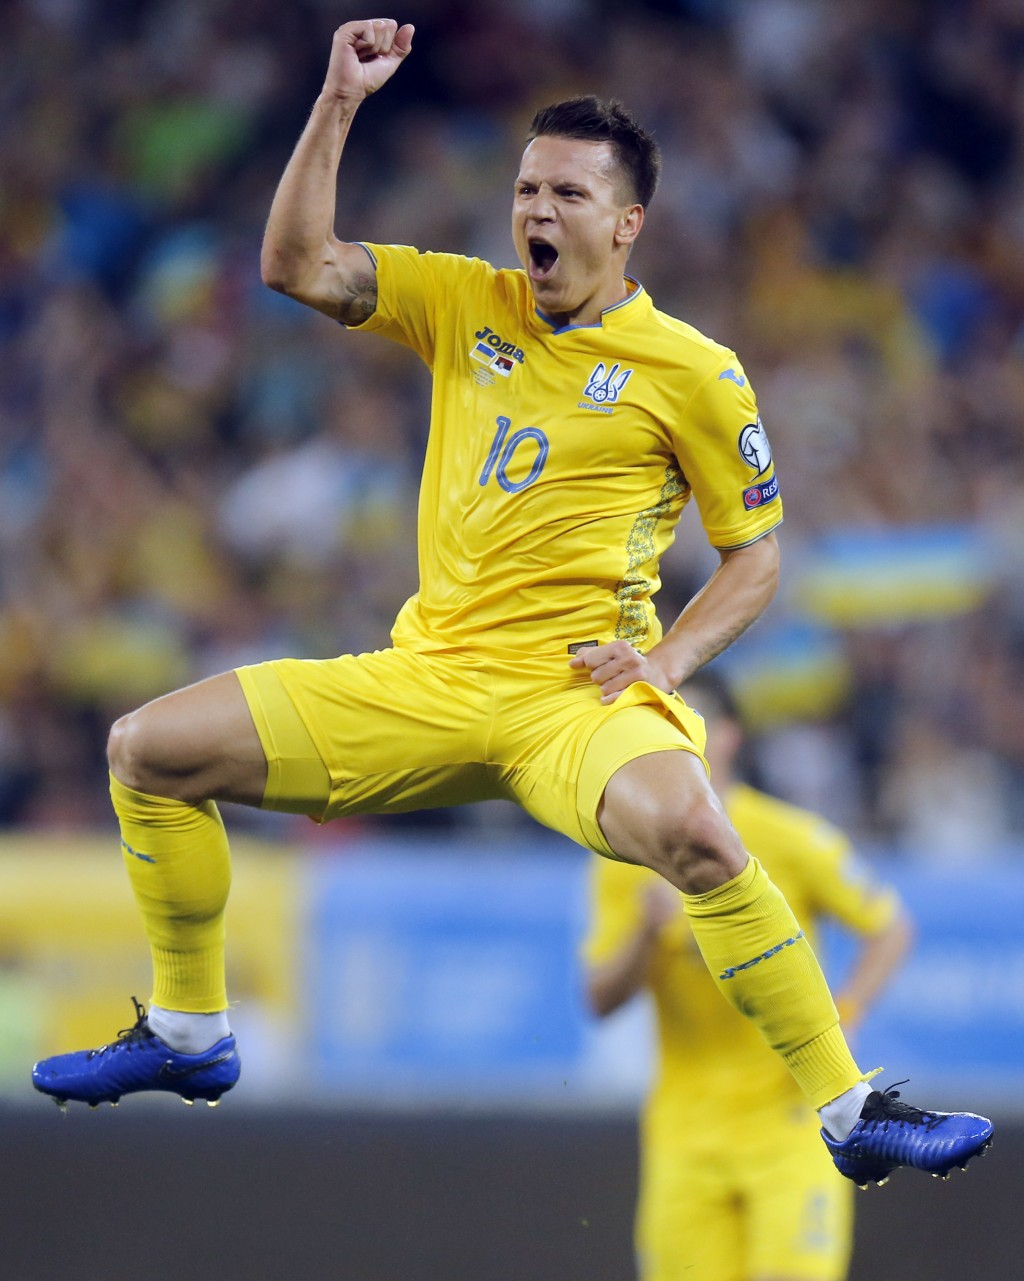 Ukraine's Yevhen Konoplyanka celebrates after scoring his side's fifth goal during the Euro 2020 group B qualifying soccer match between Ukraine and S